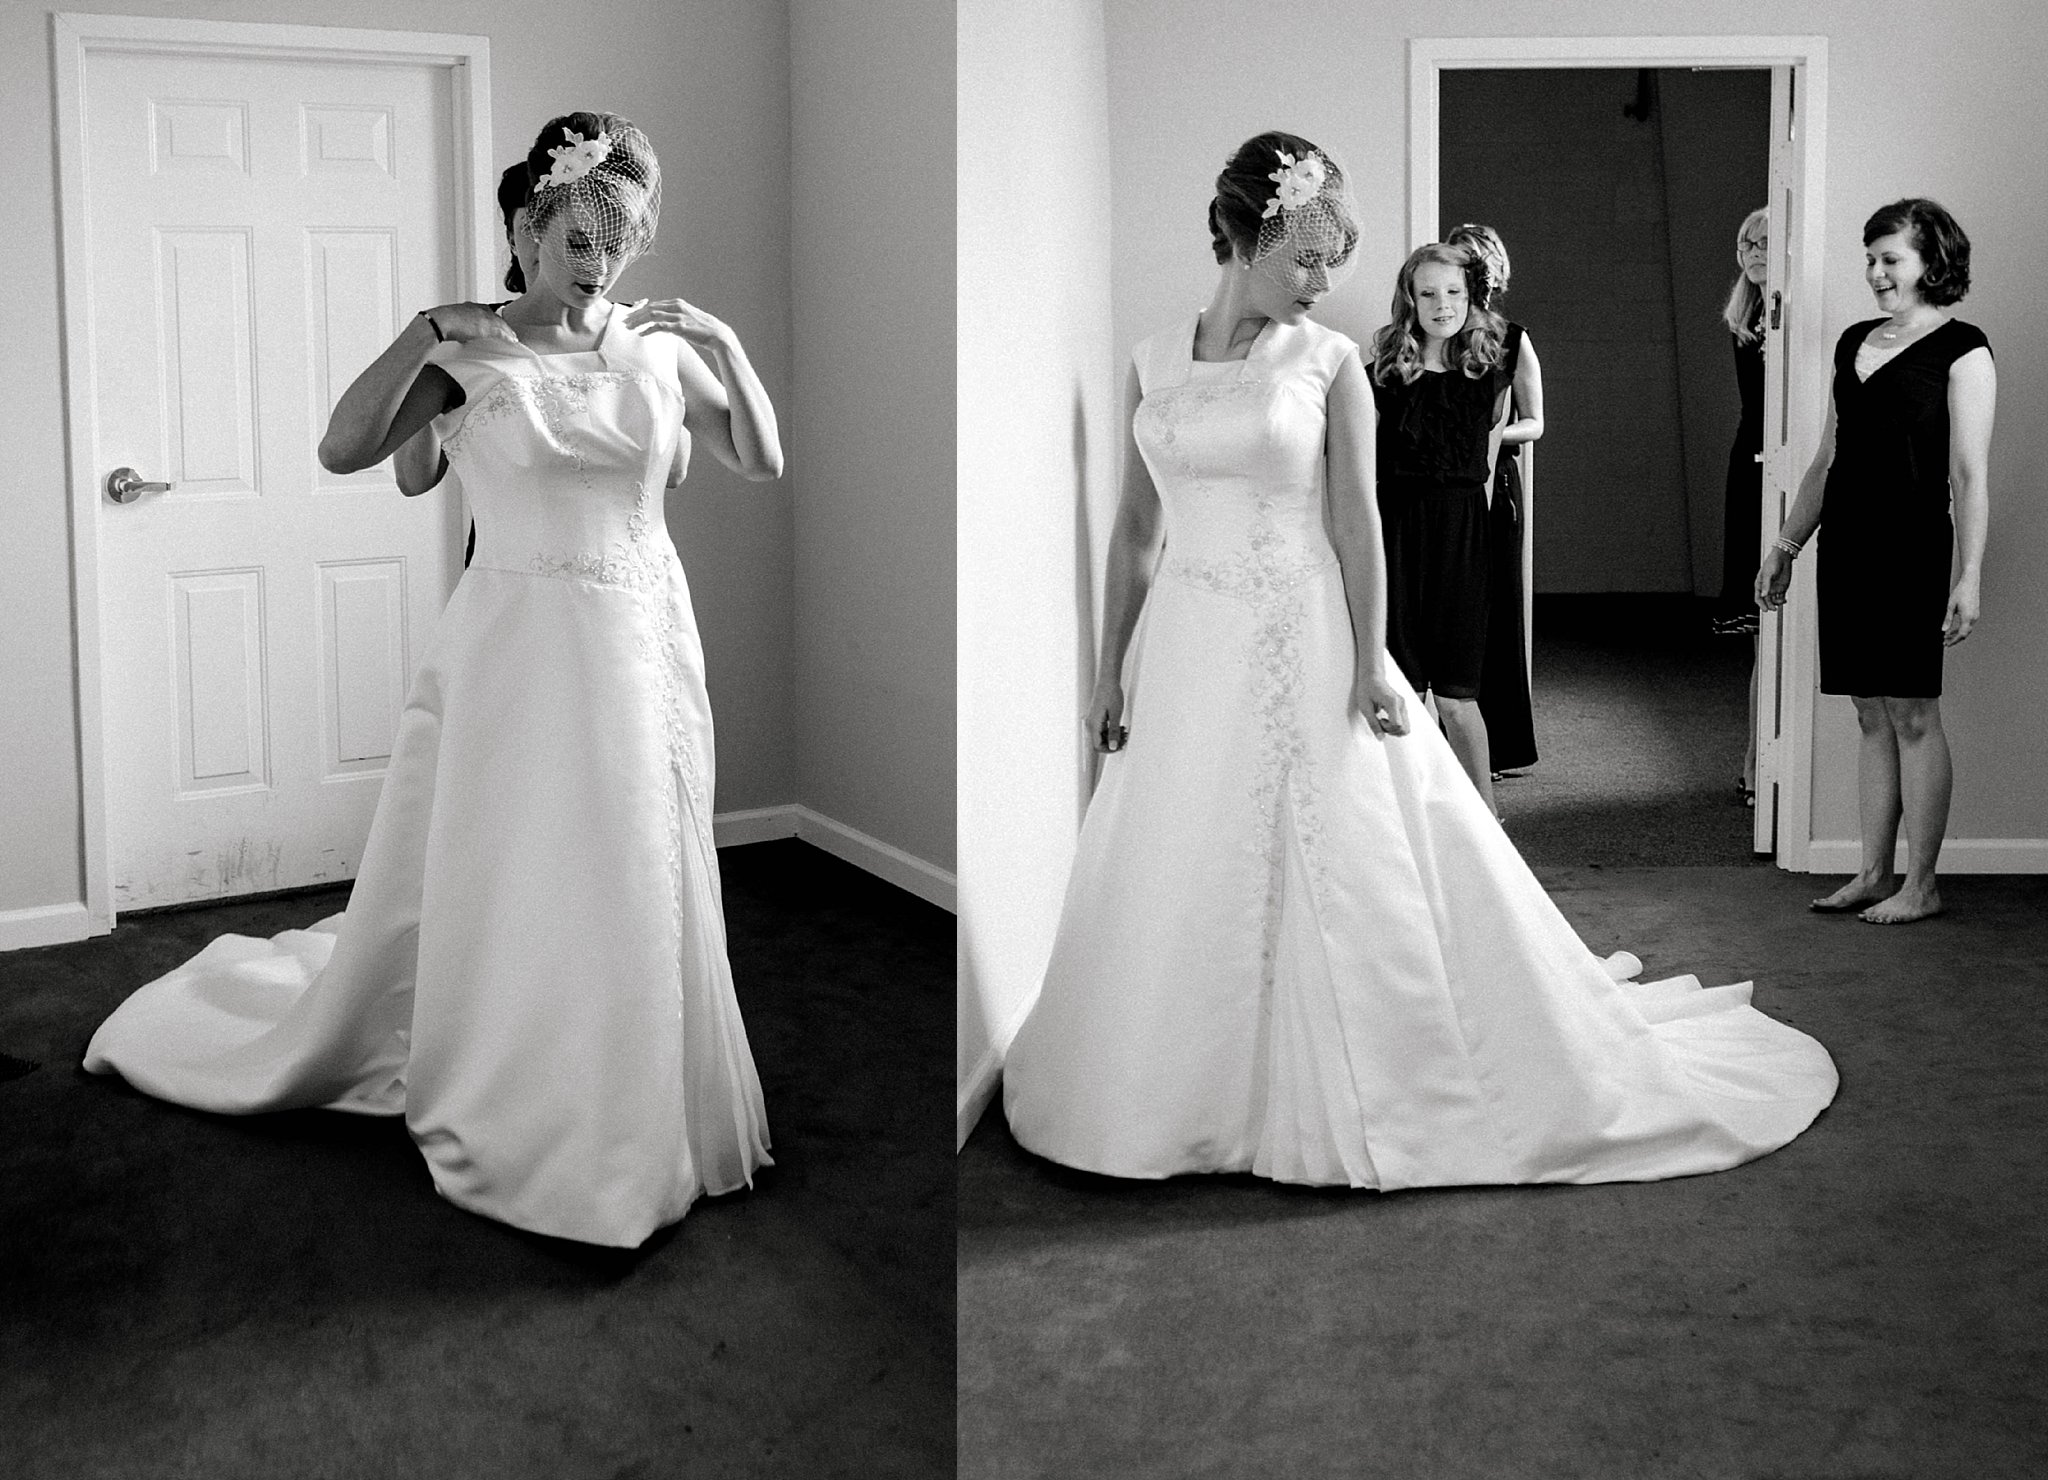 Black and white photos of a bride putting her wedding dress on.